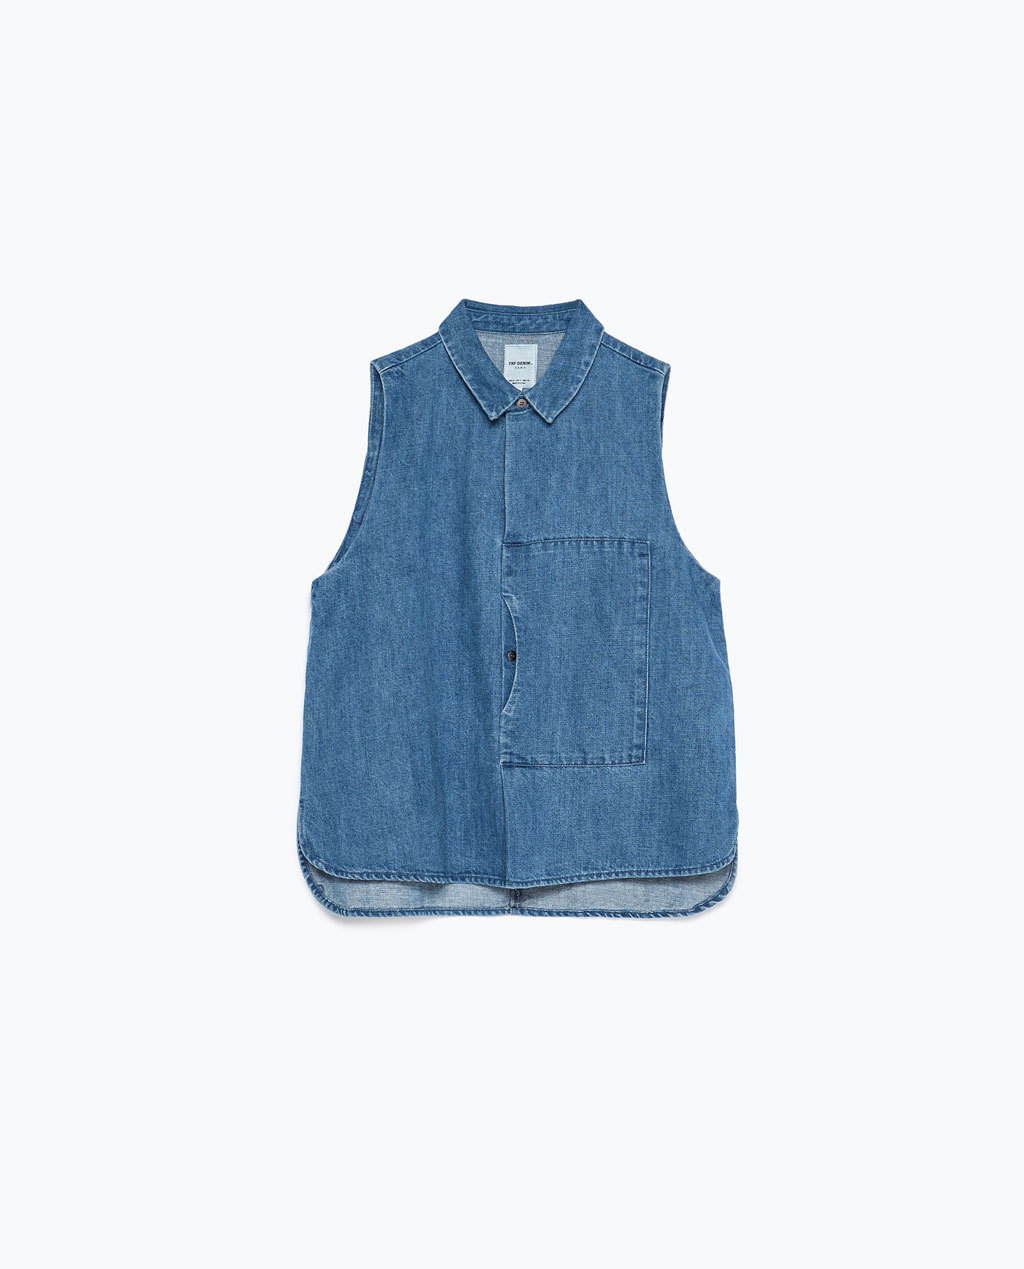 Denim Shirt - neckline: shirt collar/peter pan/zip with opening; pattern: plain; sleeve style: sleeveless; style: shirt; predominant colour: denim; occasions: casual; length: standard; fibres: cotton - mix; fit: straight cut; sleeve length: sleeveless; texture group: denim; pattern type: fabric; season: s/s 2015; wardrobe: basic